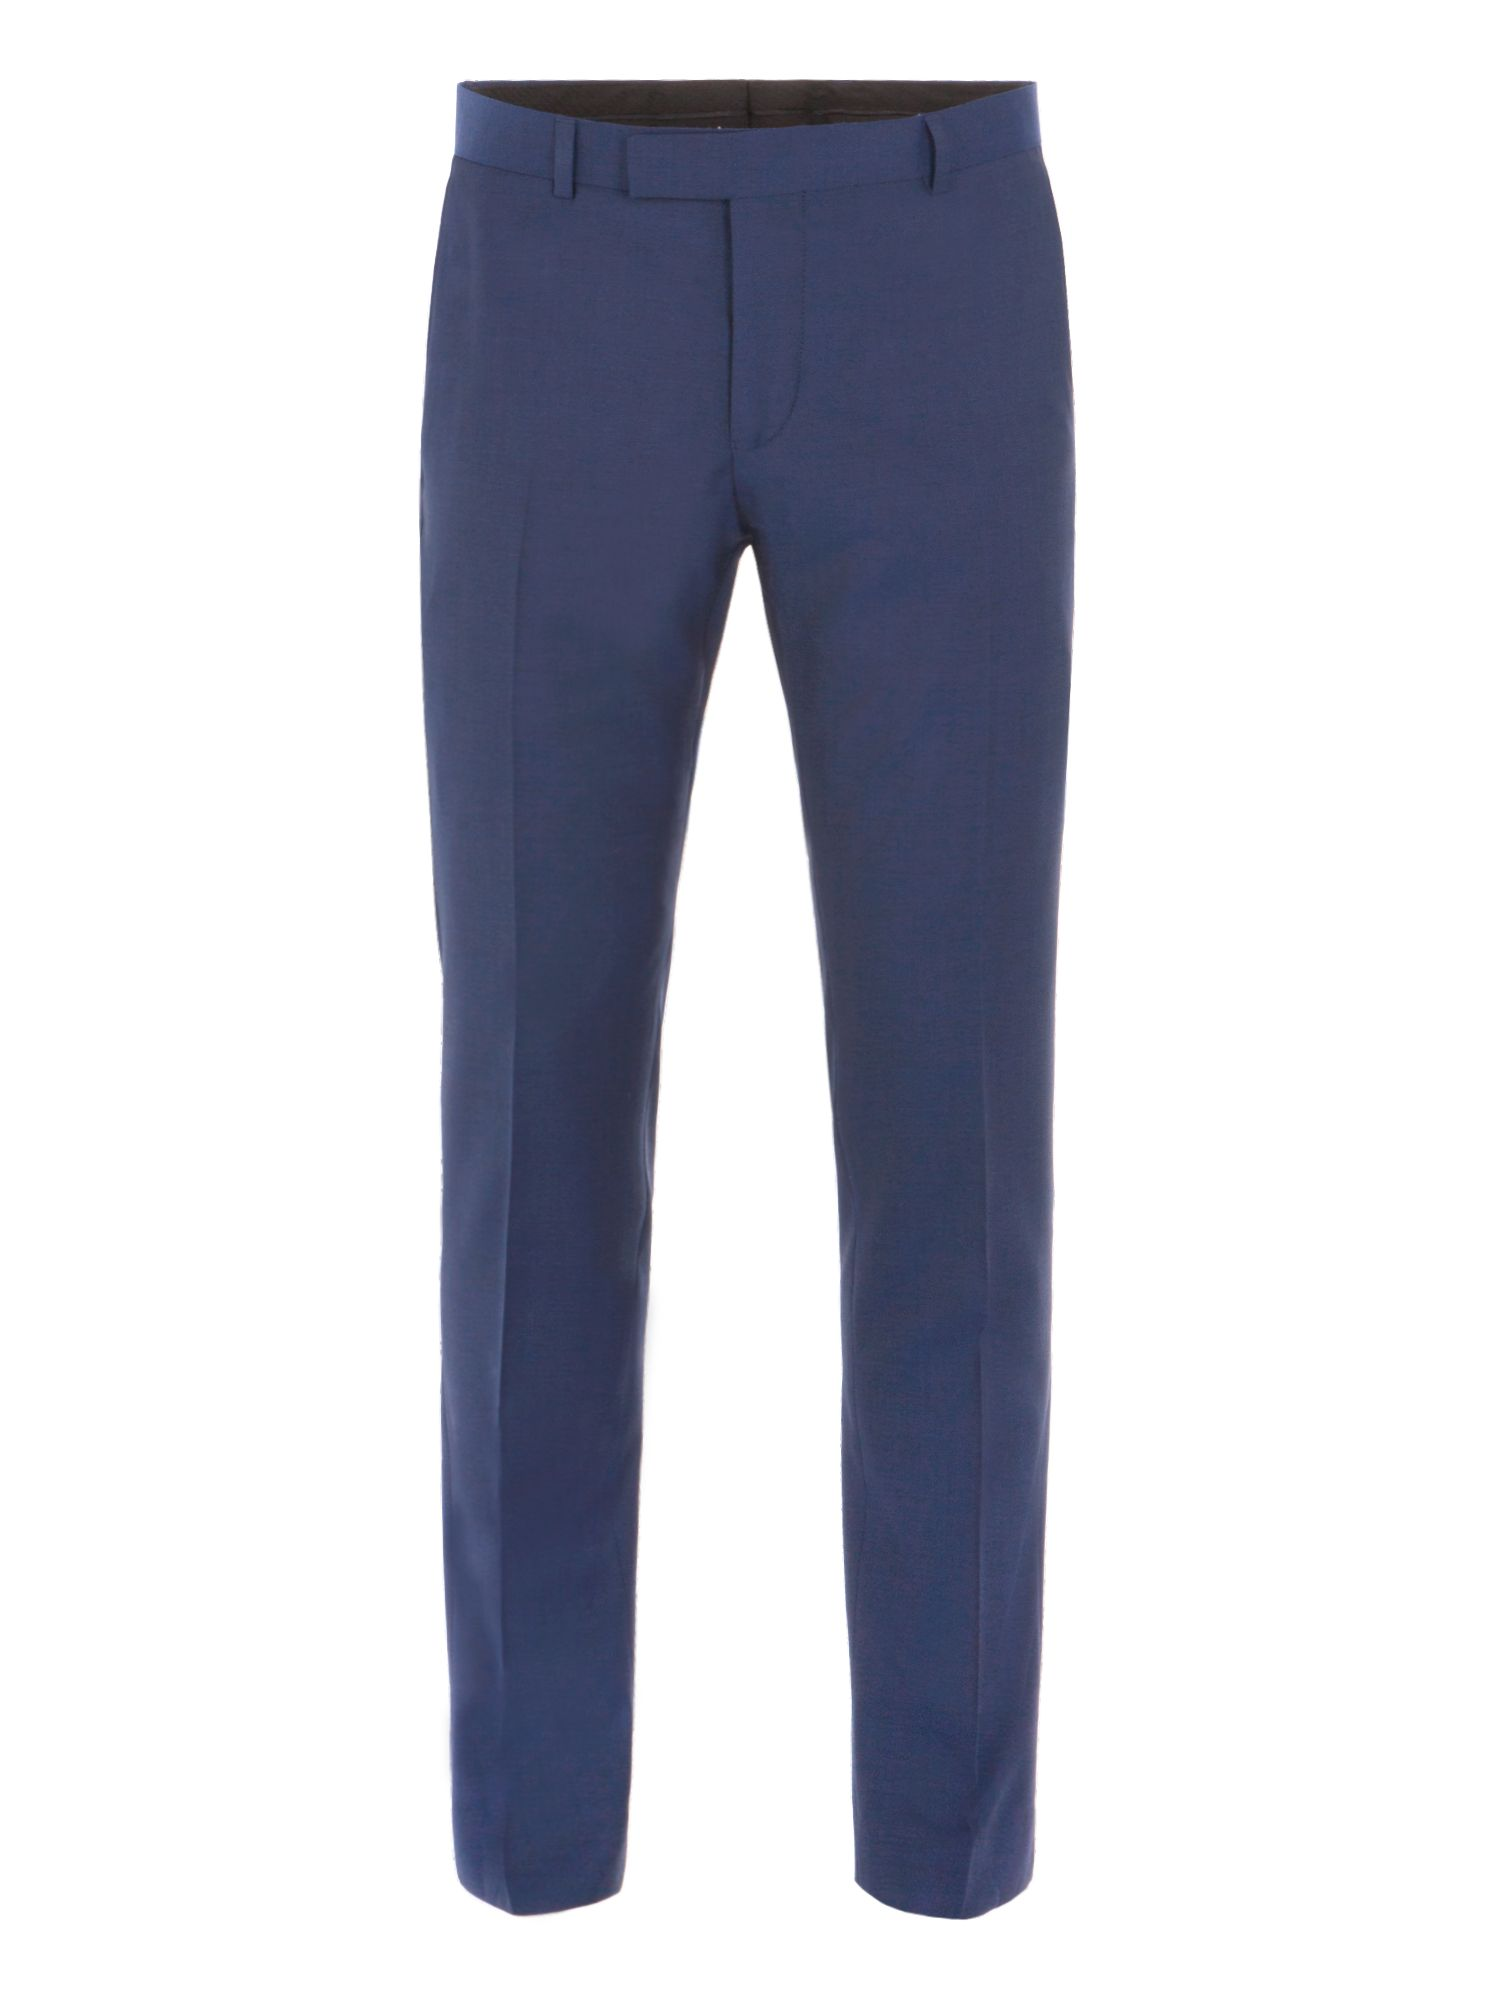 Alexandre of England Men's Alexandre of England Leadenhall Blue Suit Trouser, Blue